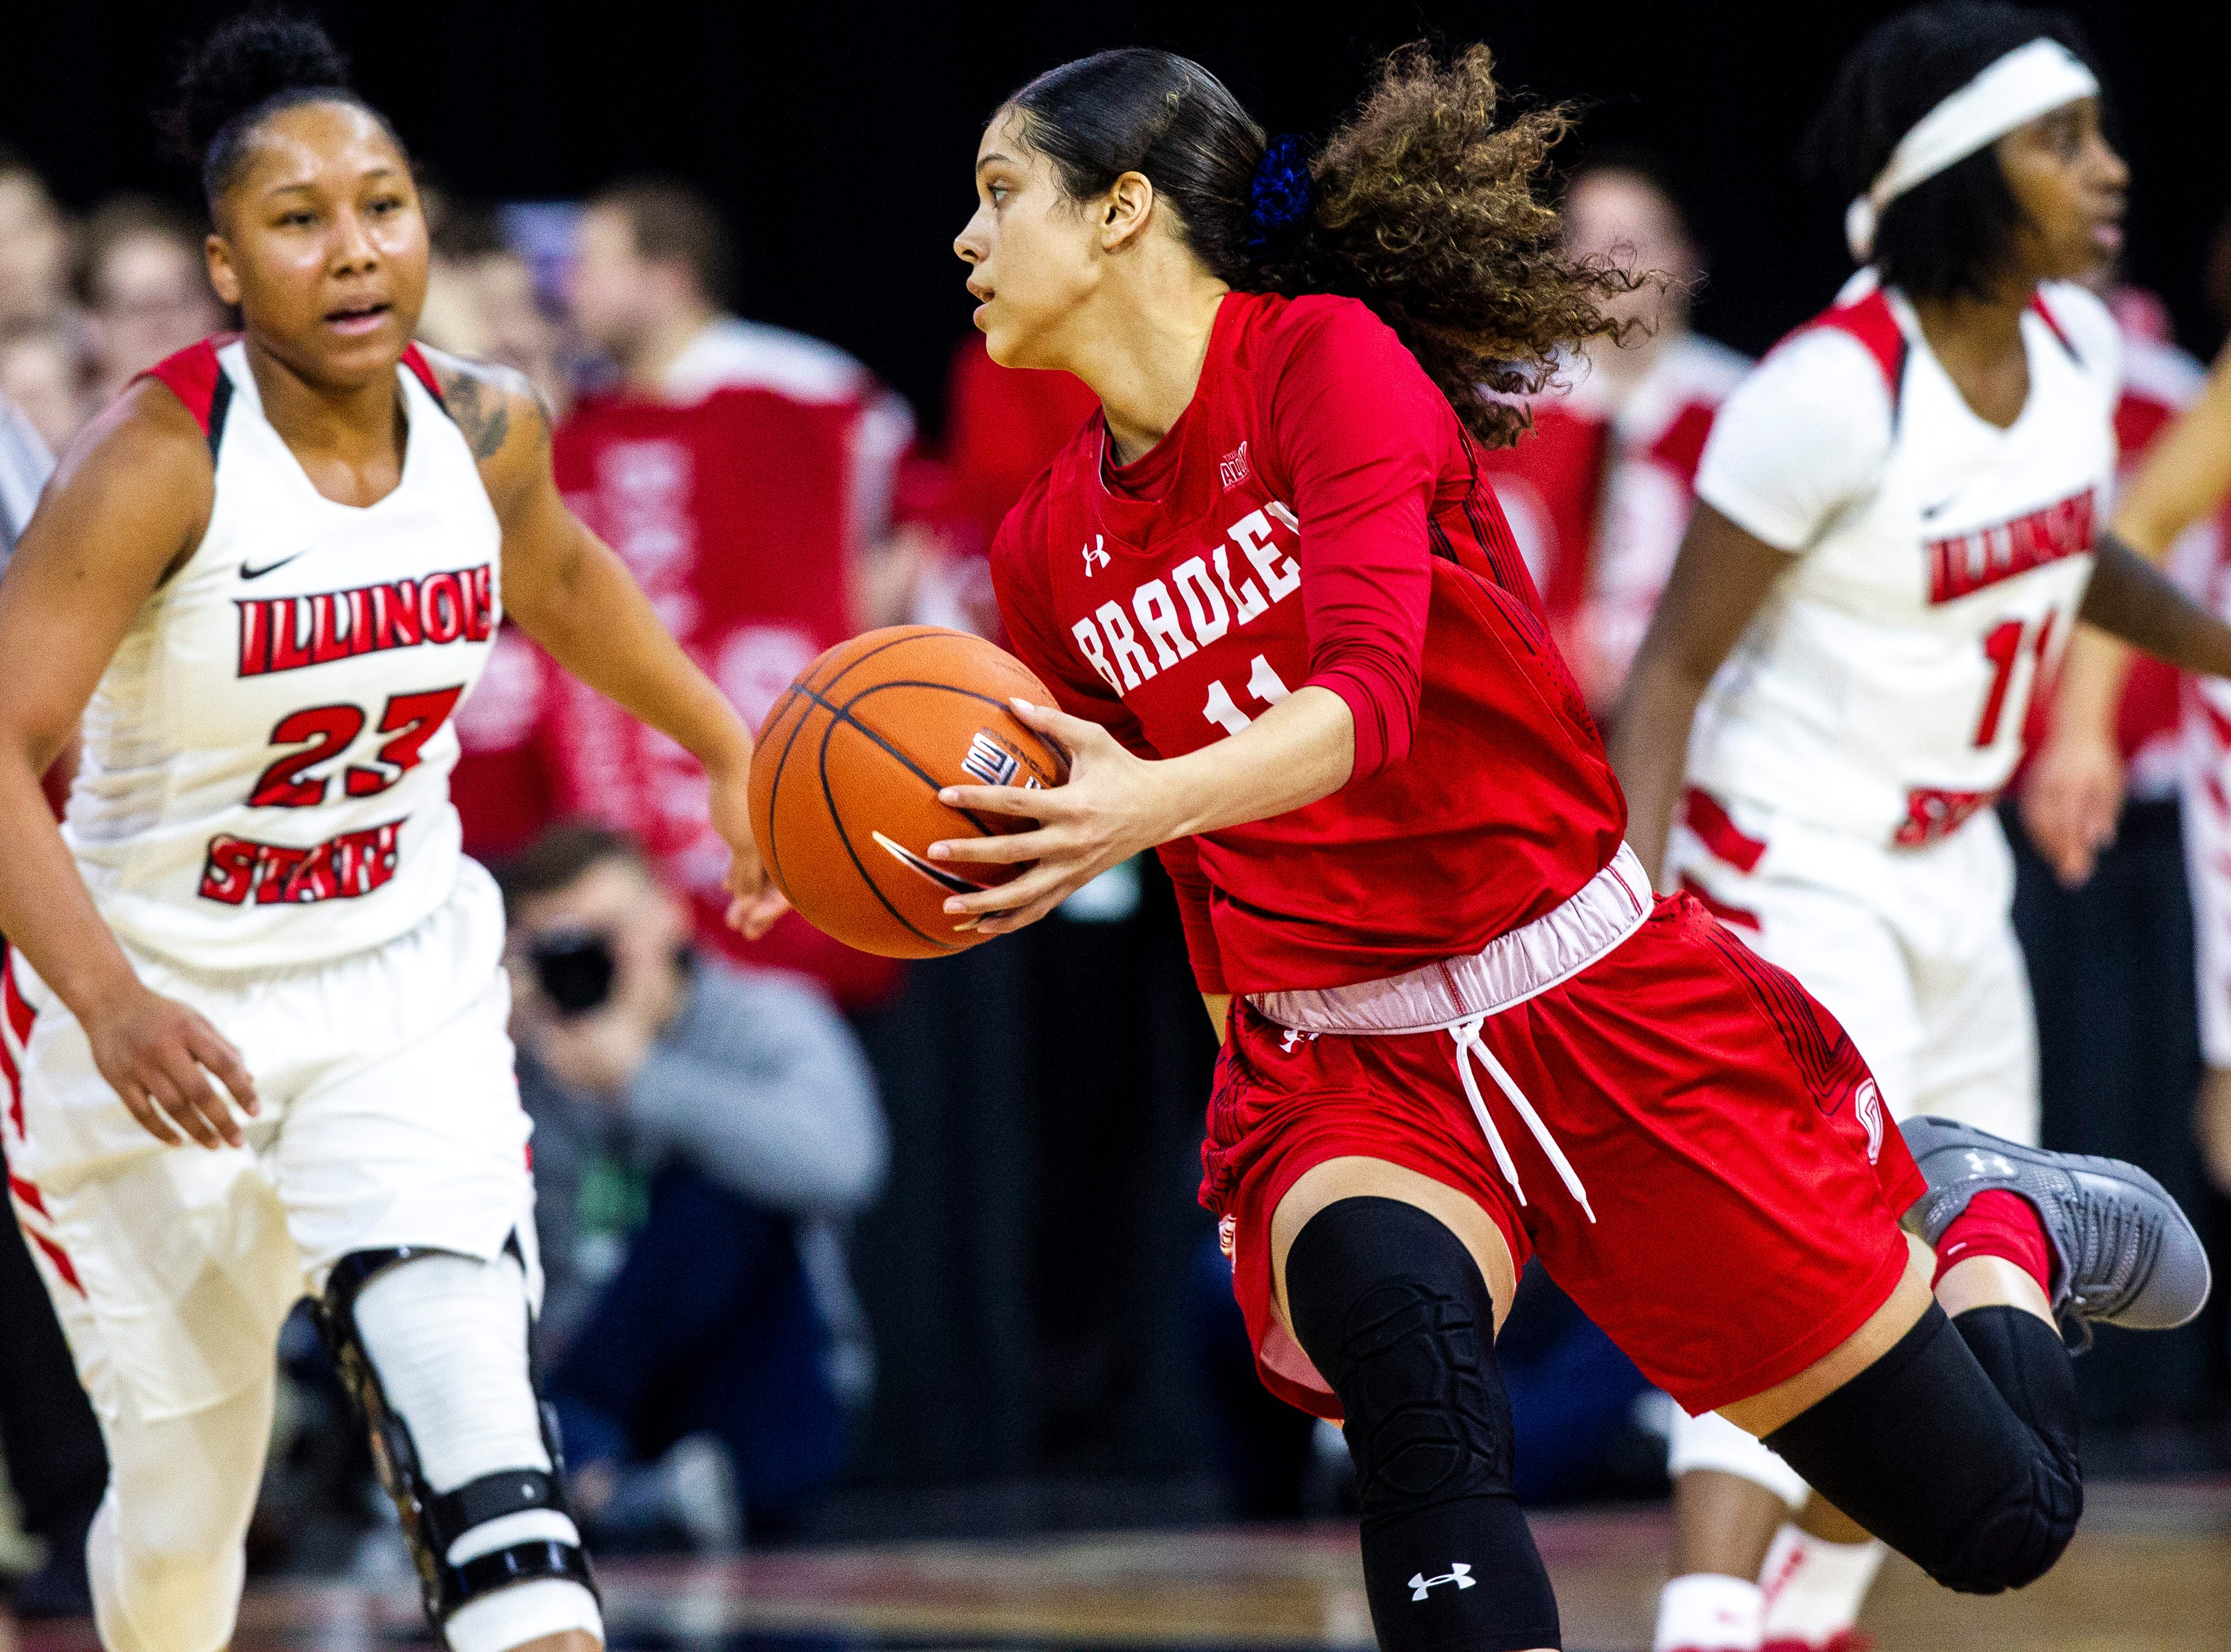 Illinois State guard Viria Livingston (23) defends Bradley guard Lasha Petree (11) during a NCAA Missouri Valley Conference women's basketball quarterfinal tournament game, Friday, March 15, 2019, at the TaxSlayer Center in Moline, Illinois.